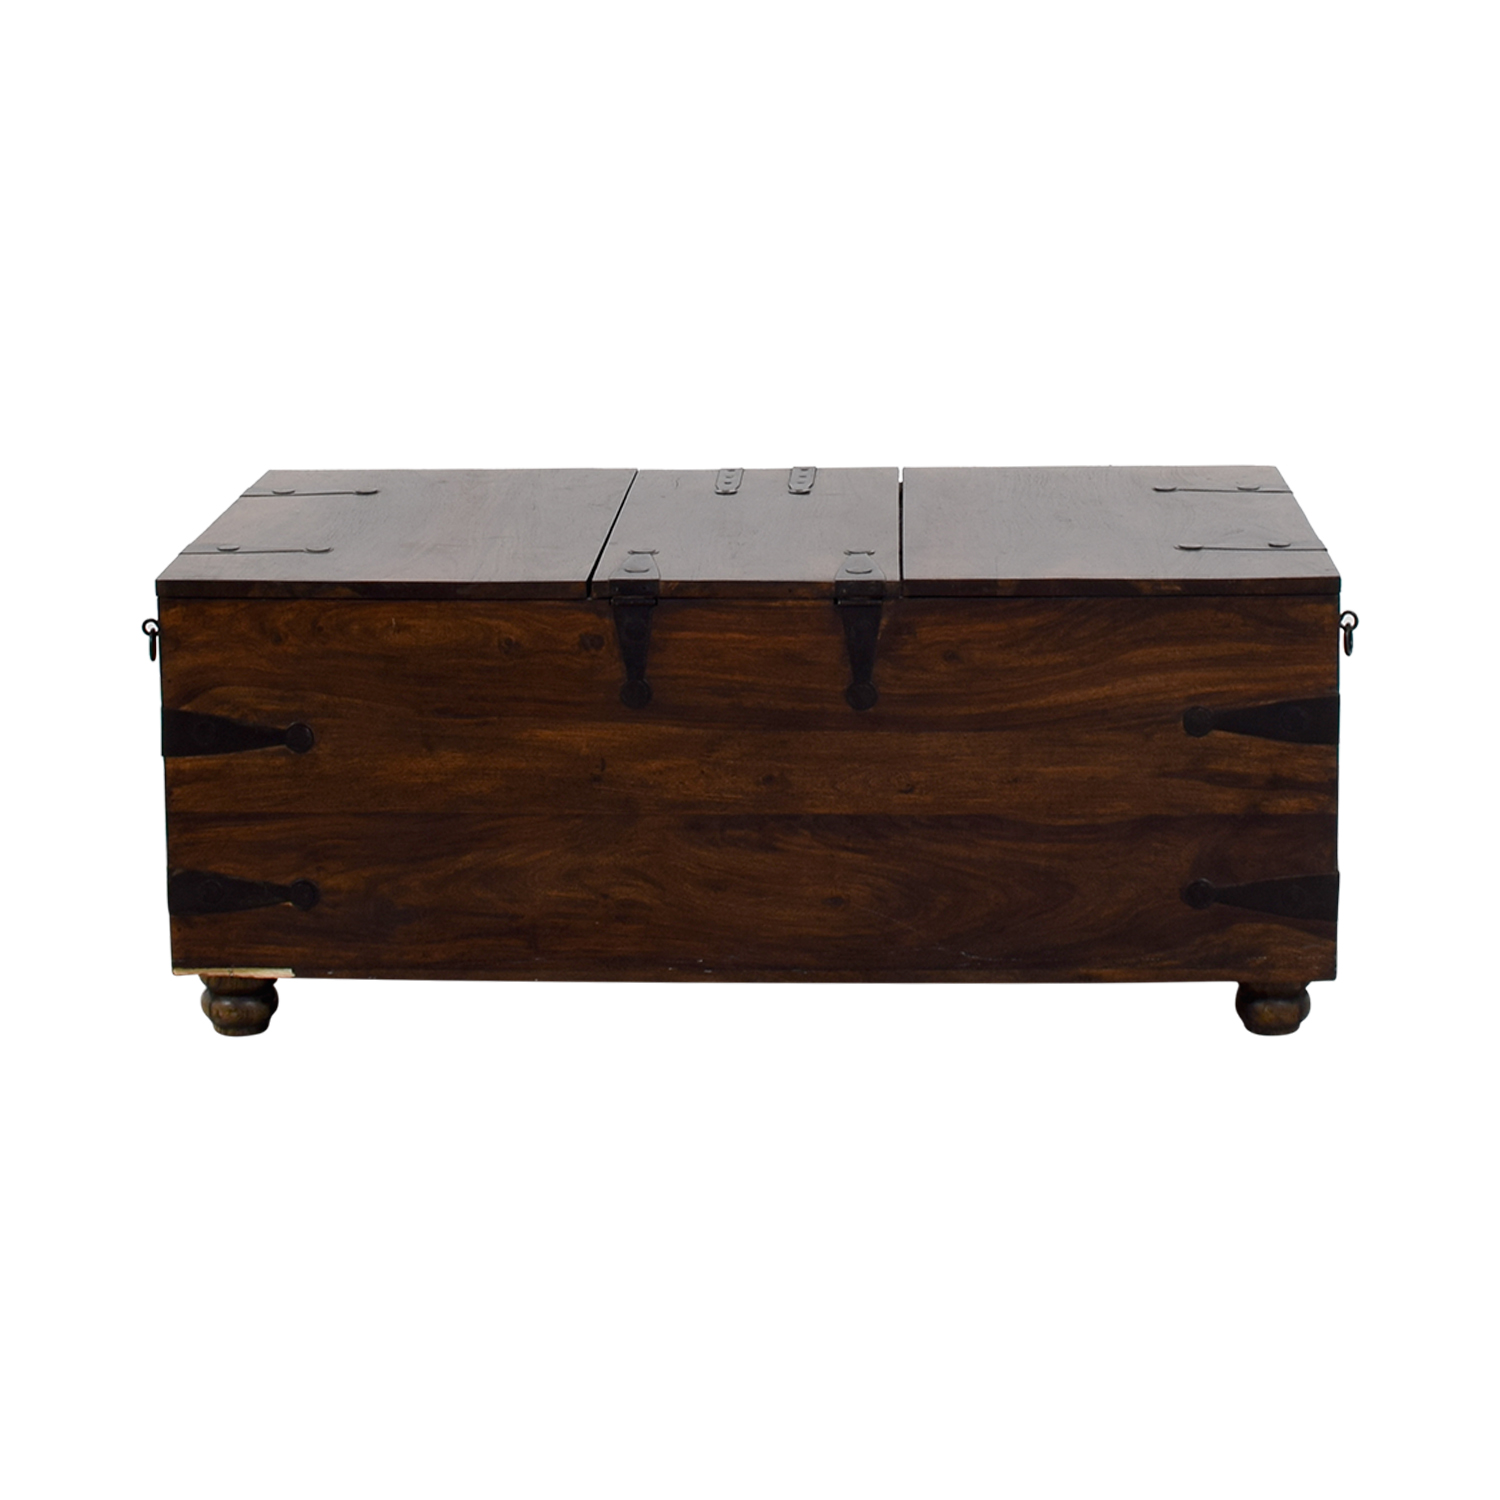 Crate & Barrel Crate & Barrel Trunk Coffee Table discount